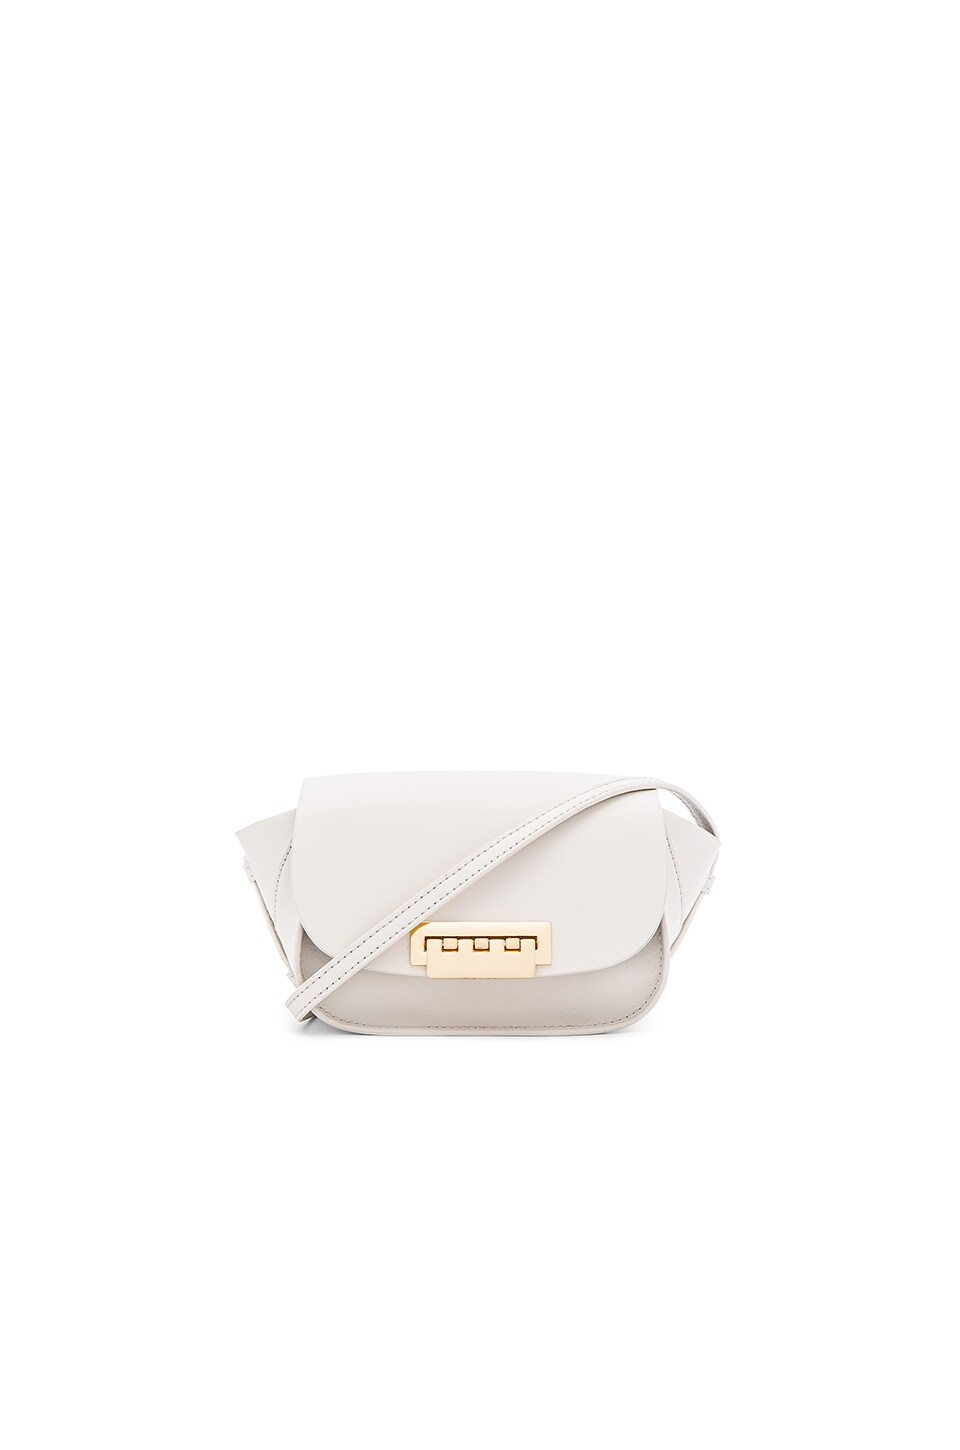 Zac Zac Posen Eartha Iconic Micro Accordion Crossbody Bag in Ivory